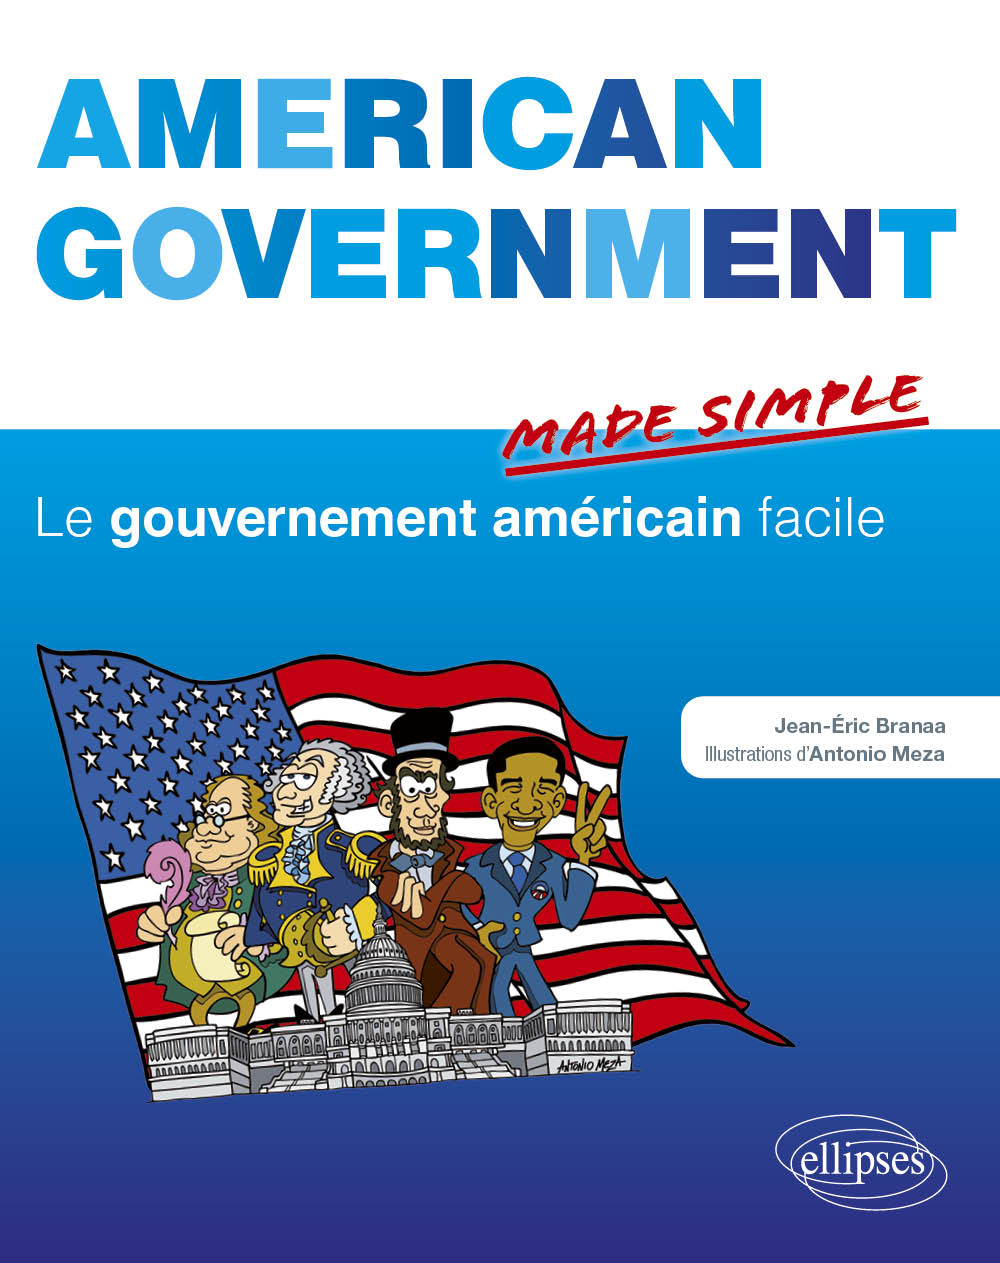 American Government Made simple. Le gouvernement americain facile